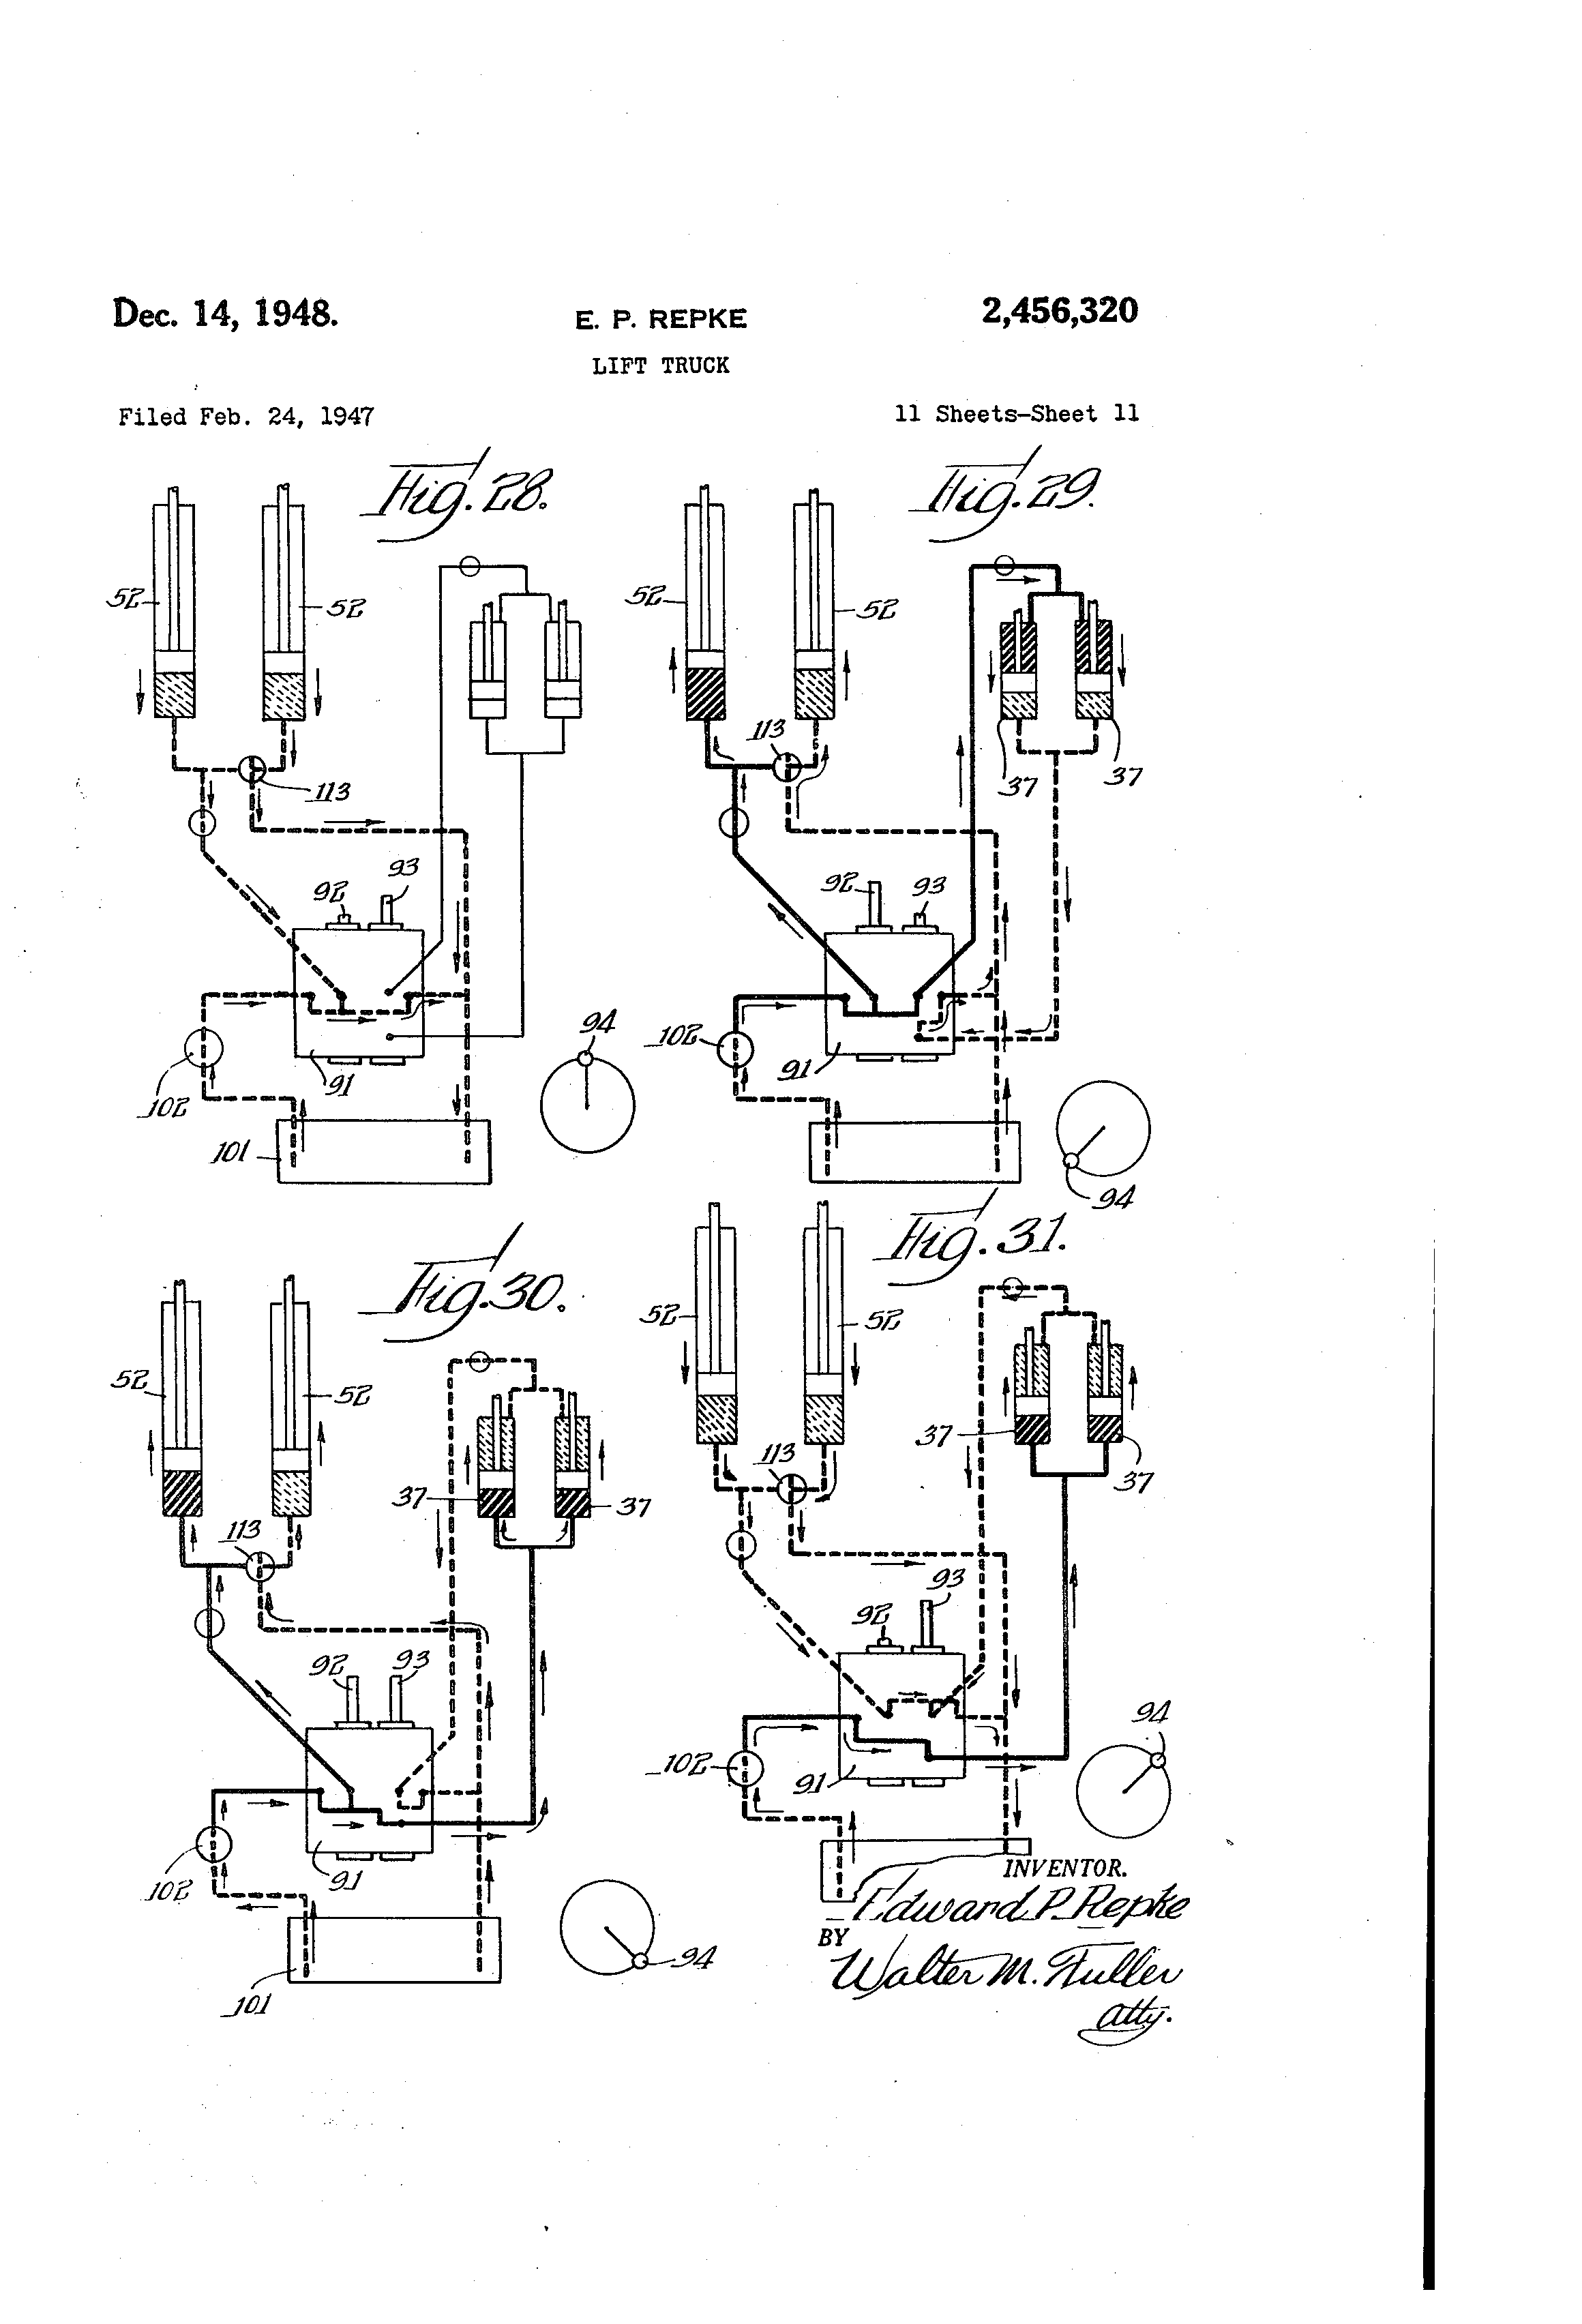 Yale Electric Forklift Code 11 Clark Wiring Diagram And Schematics